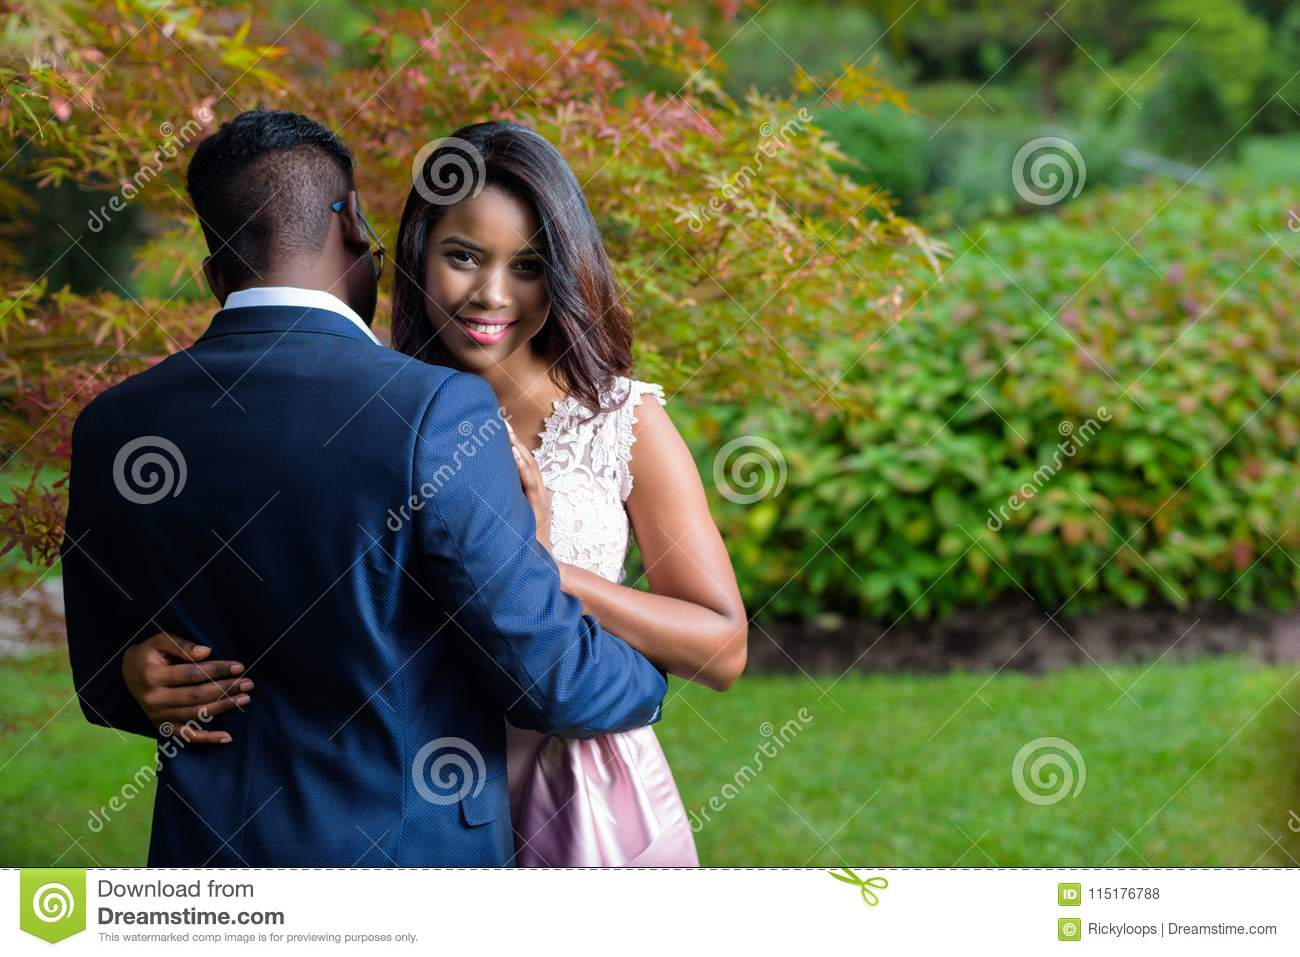 Romantic young couple hugging each other underneath colourful autumn trees